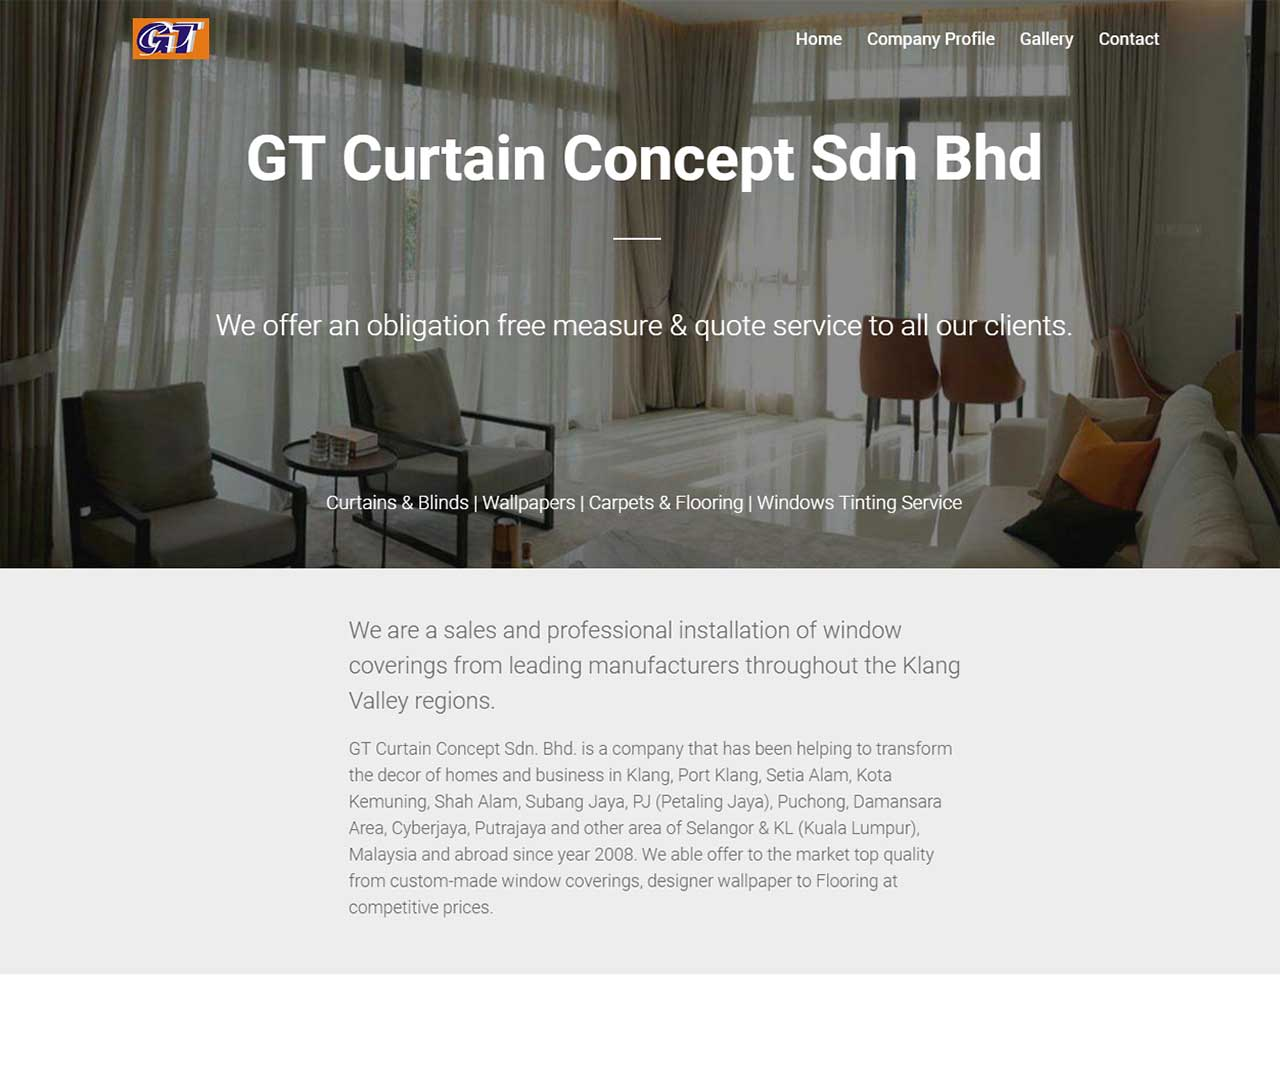 GT Curtain Concept Sdn Bhd - Web Design, Local SEO Services by Sky Rocket Digital   Klang Valley & Selangor in Malaysia